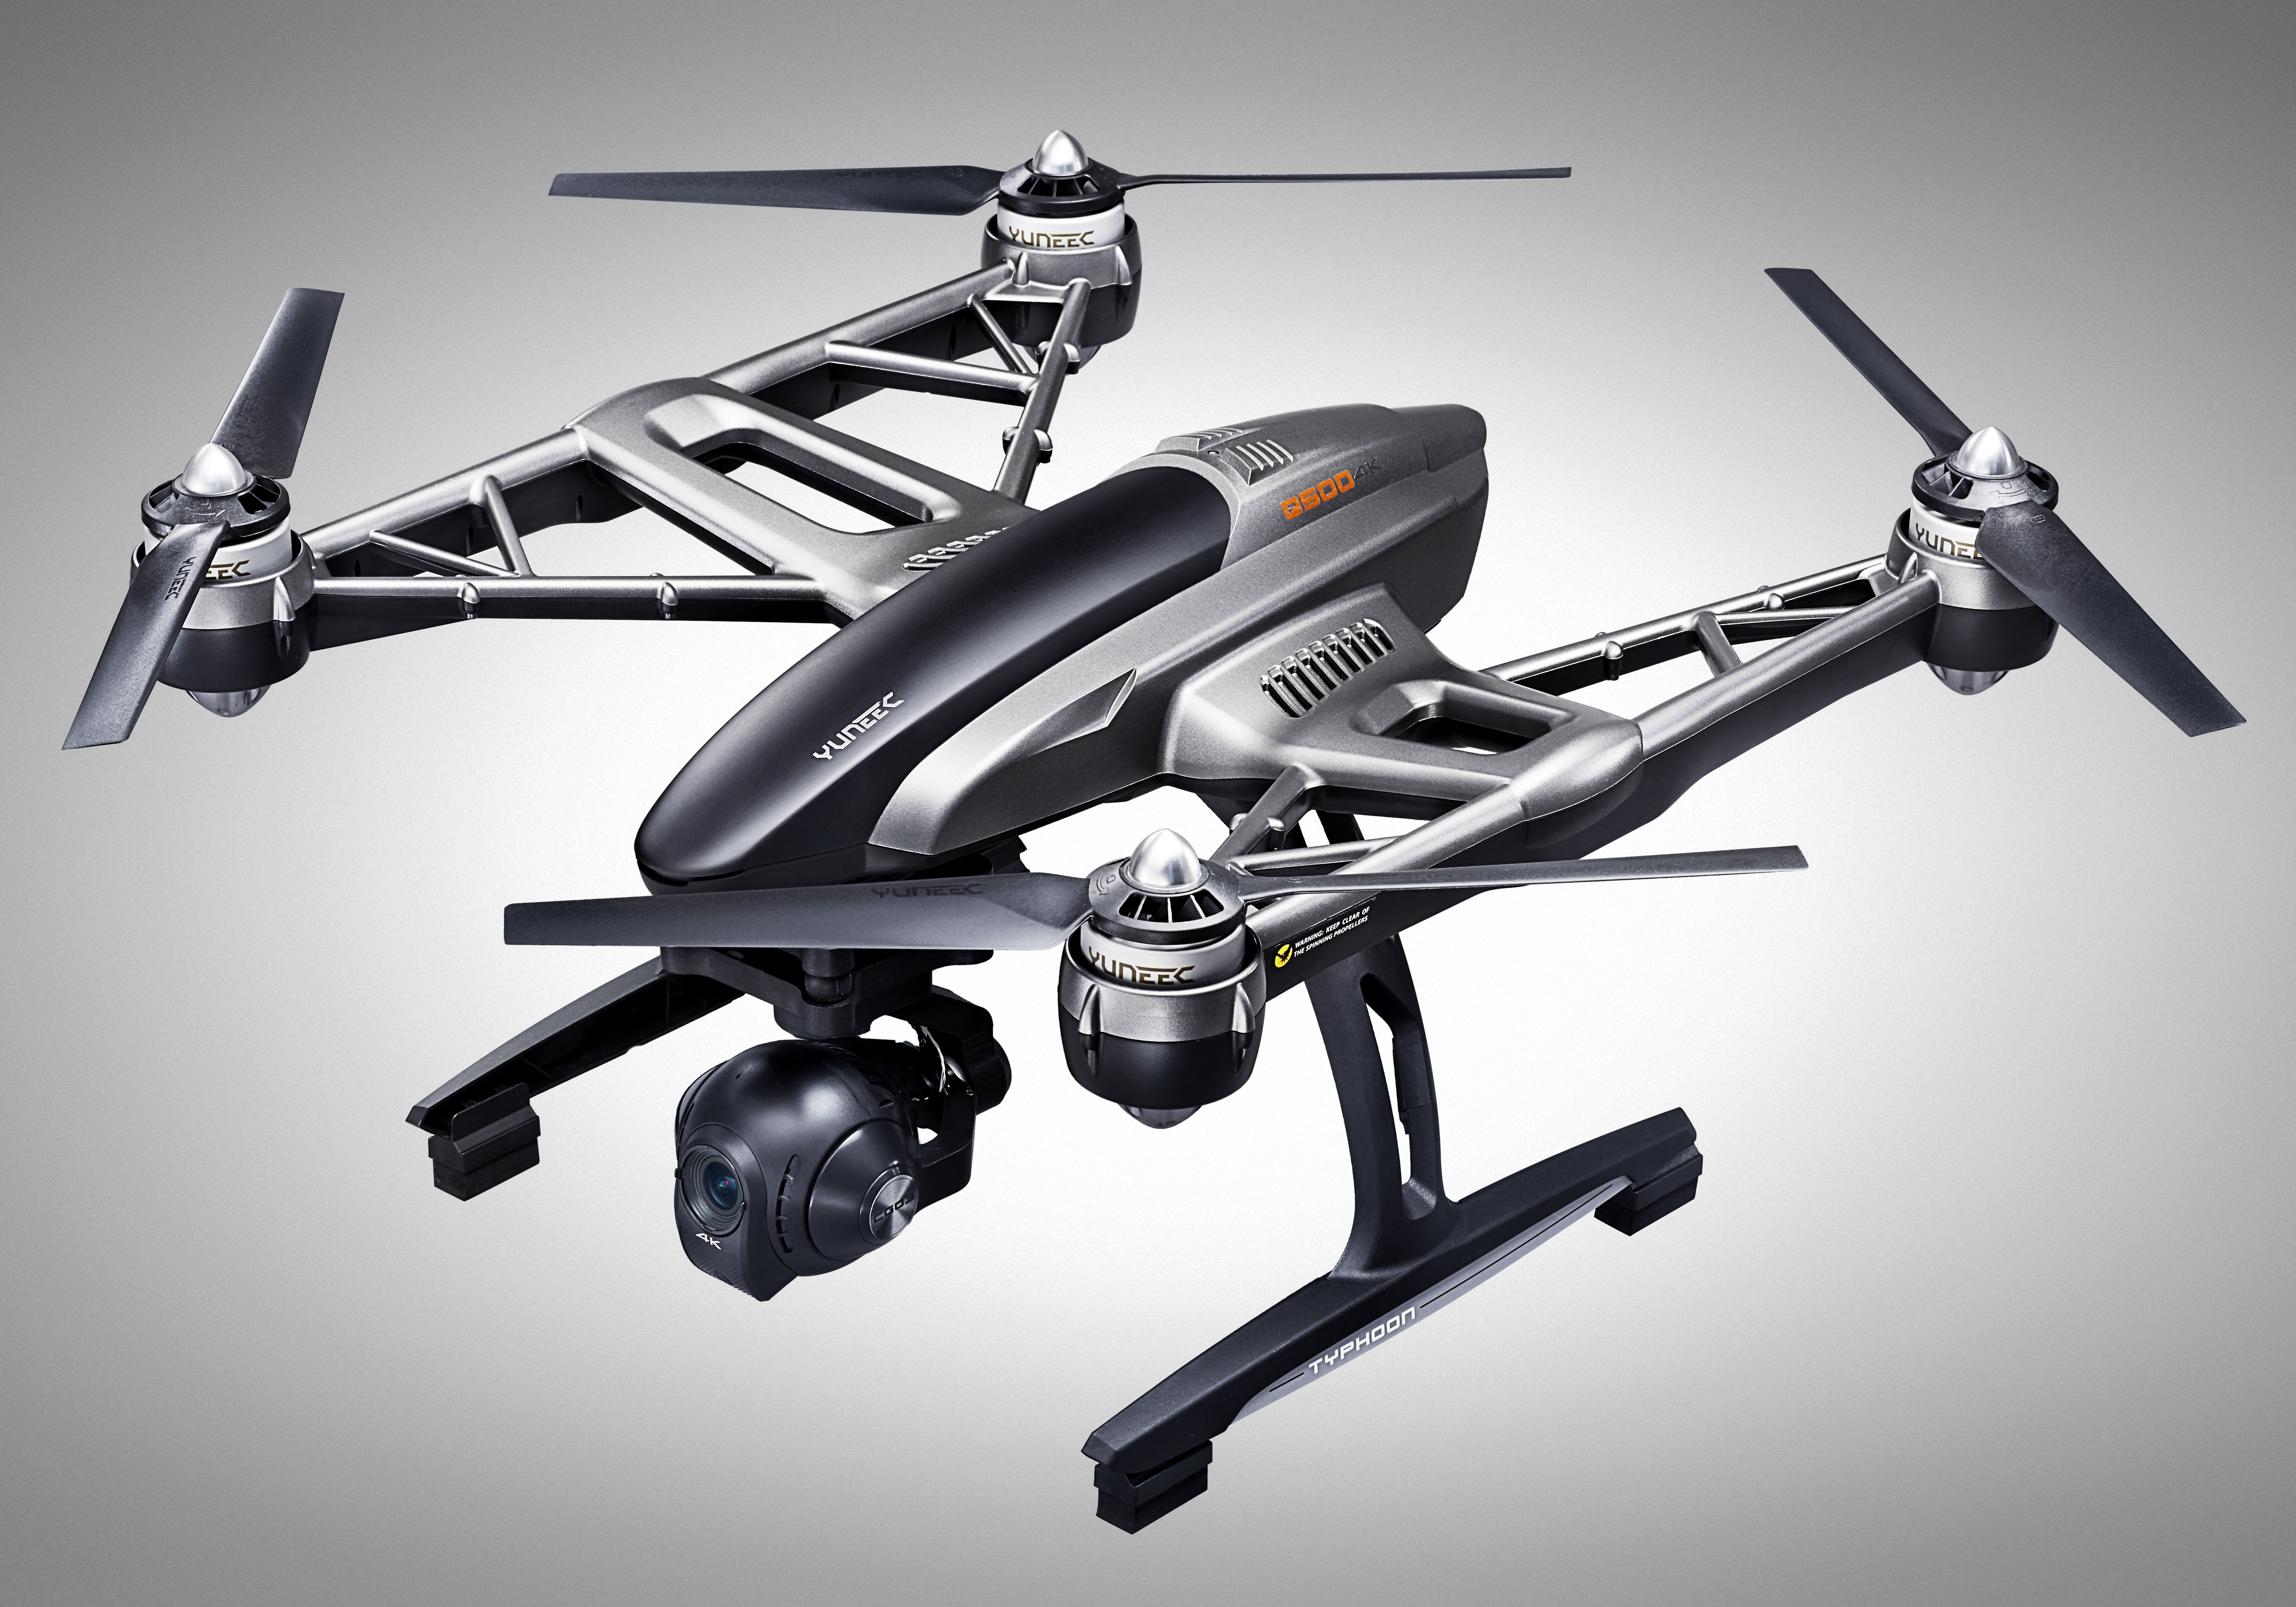 Introducing the Yuneec Typhoon Q500 4K Drone.